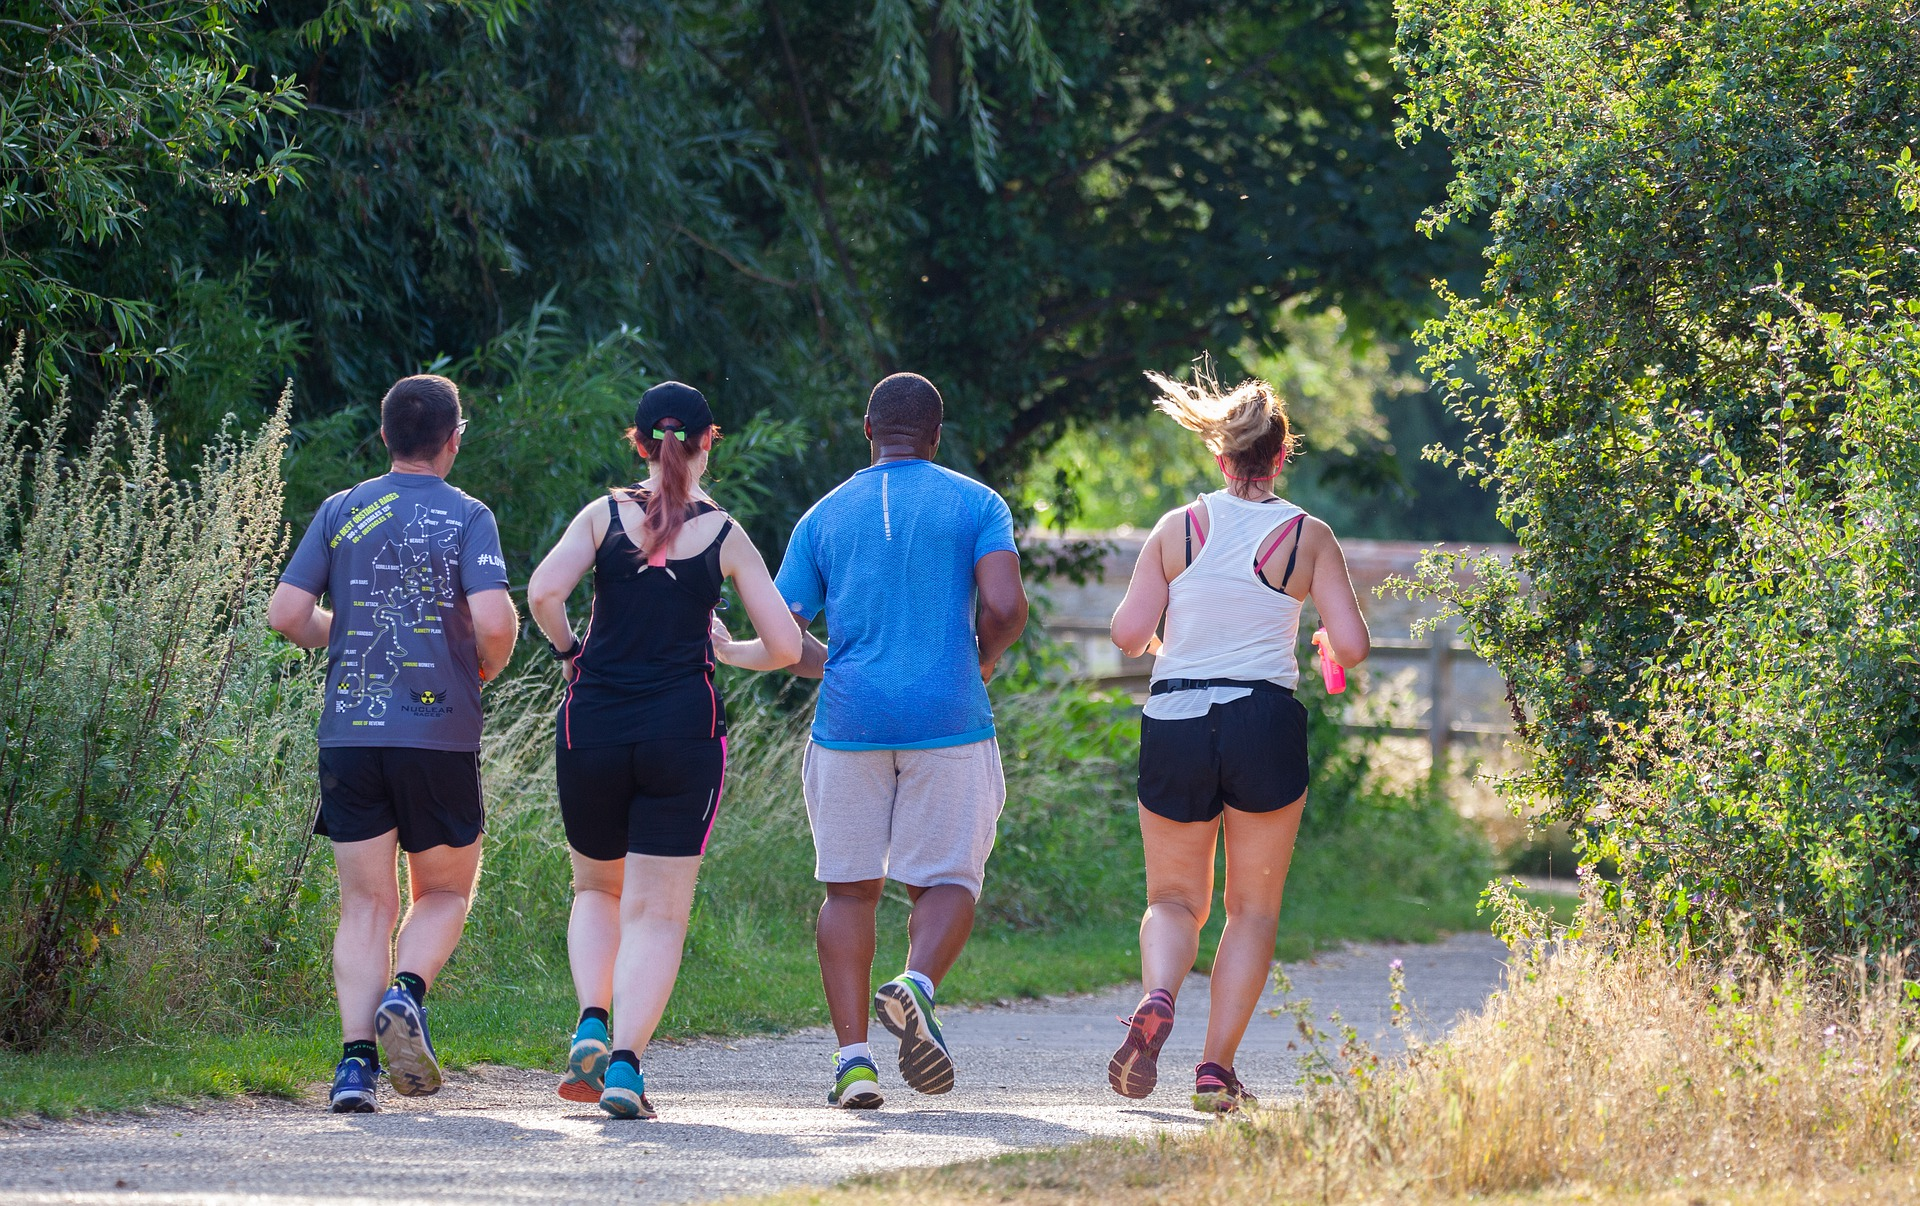 People running on a paved trail.